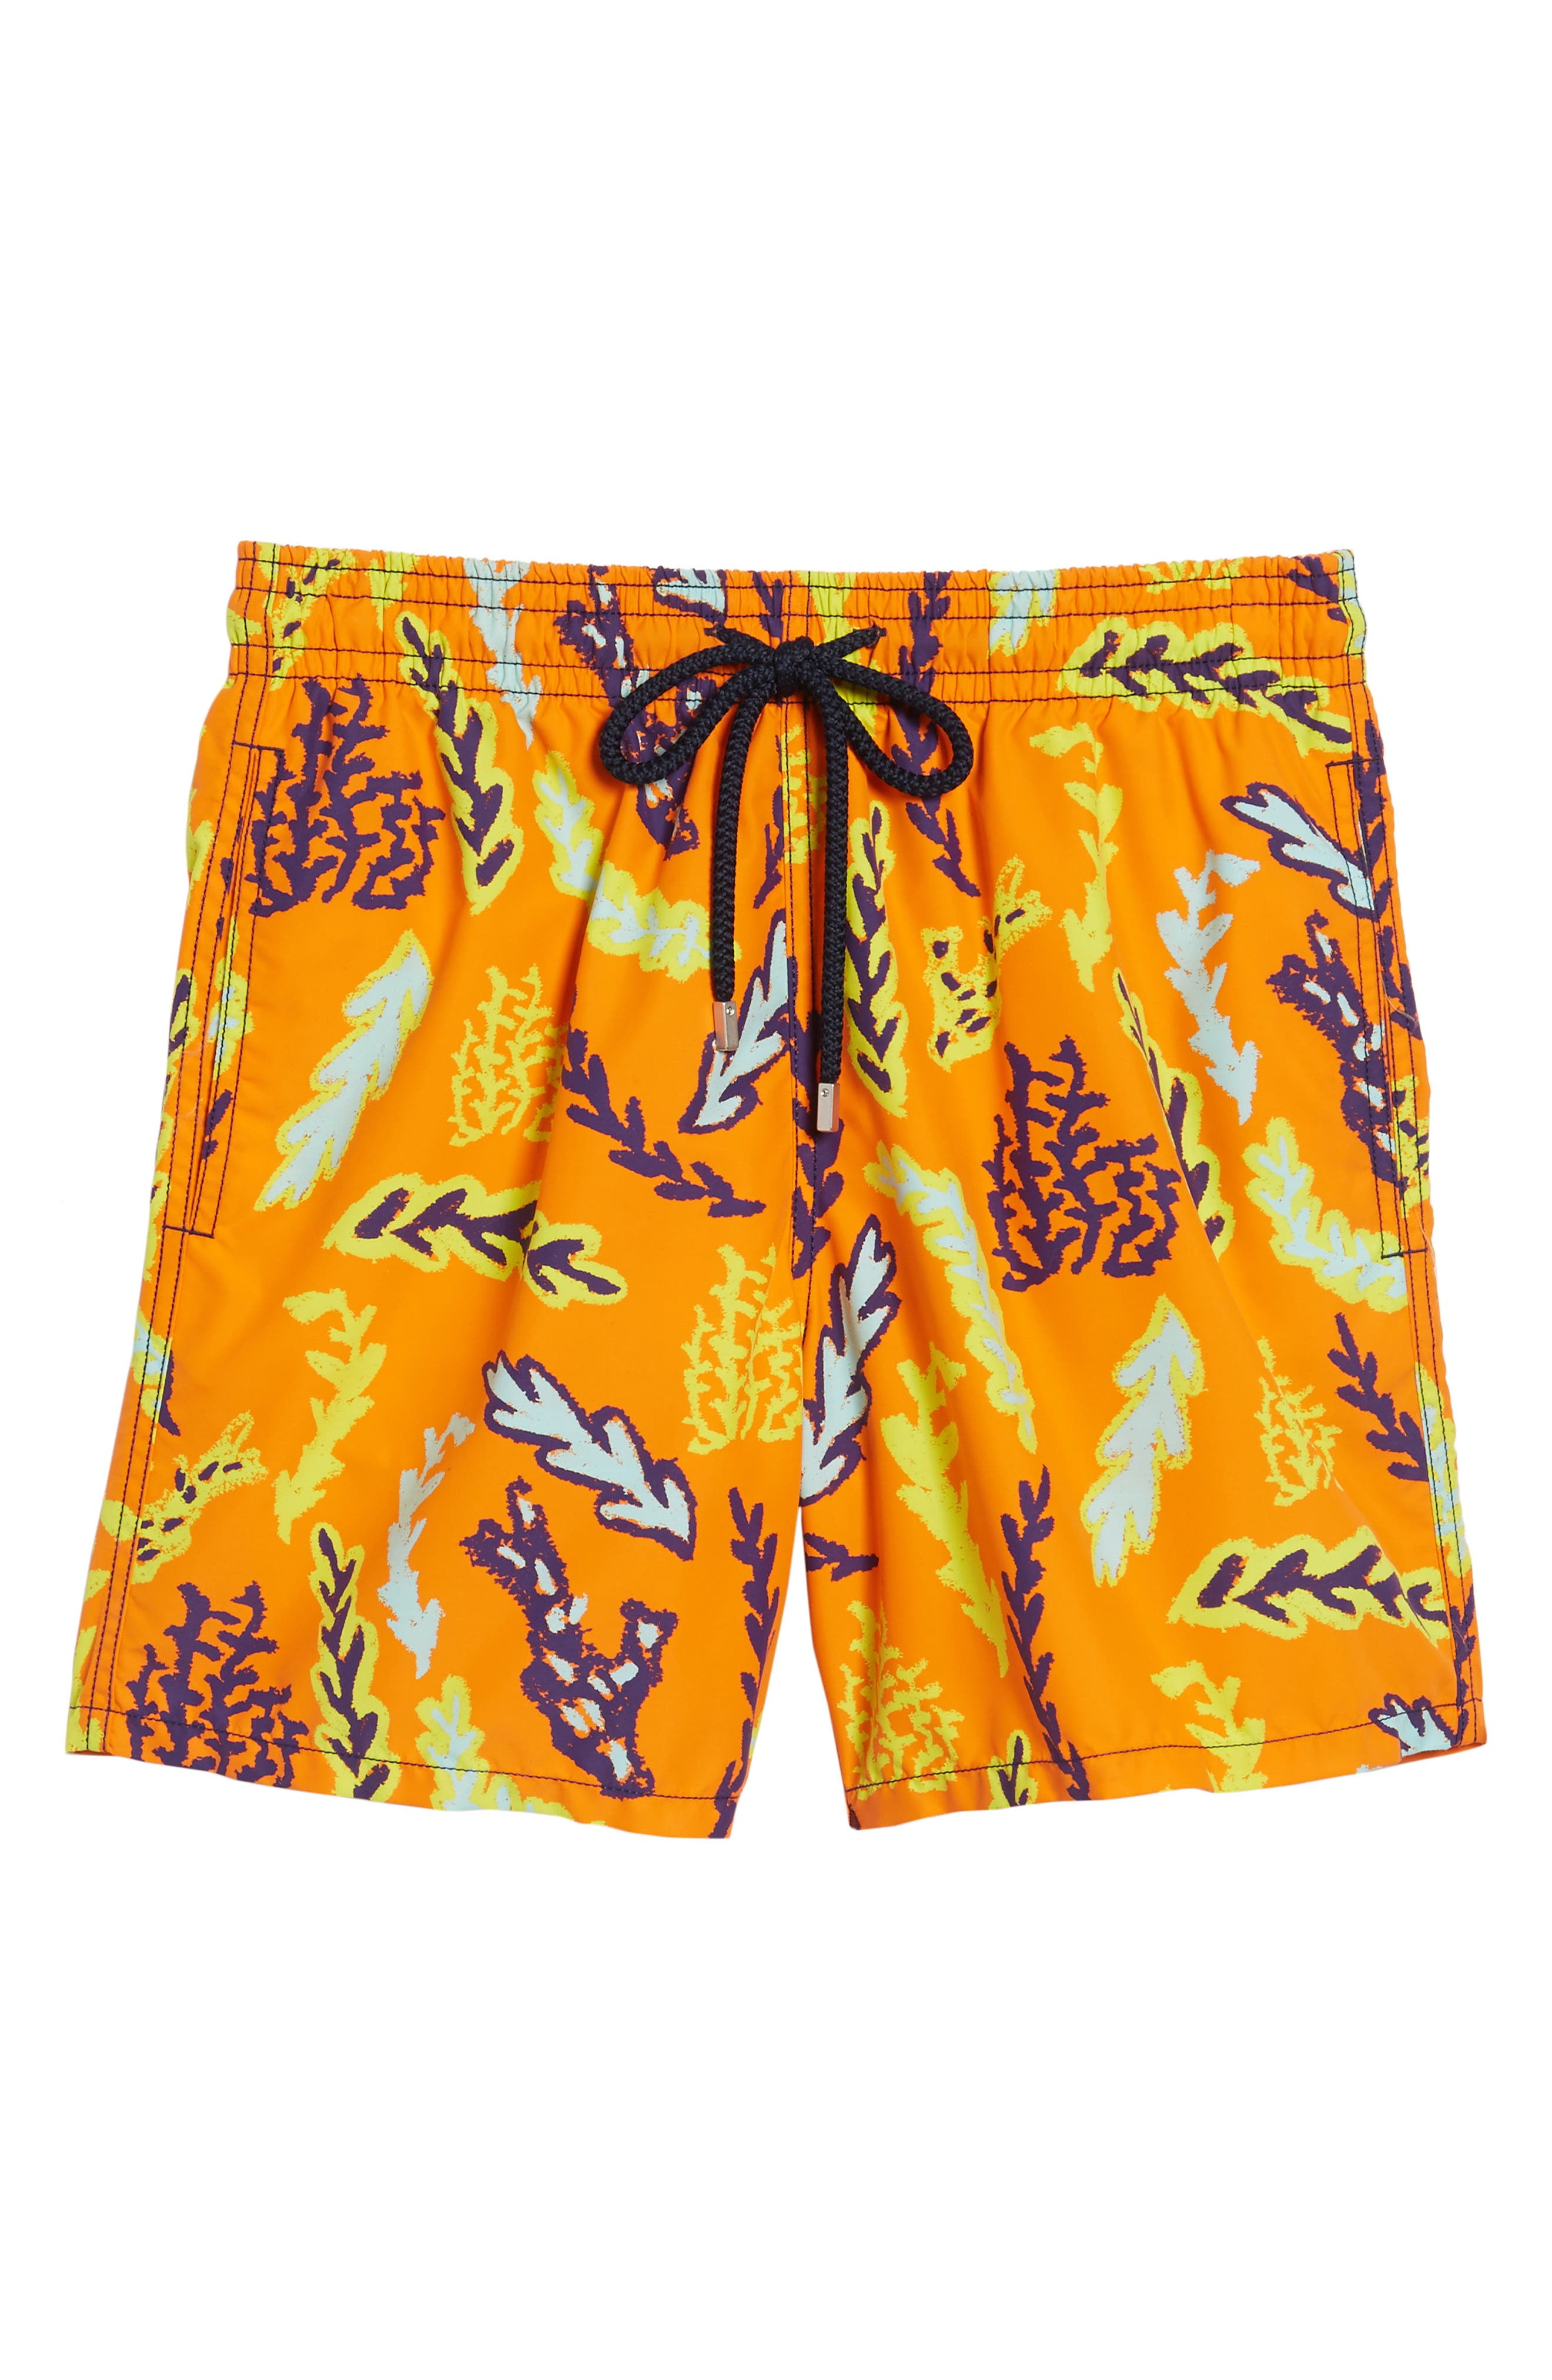 Solar Seaweed Print Swim Trunks,                             Alternate thumbnail 6, color,                             812